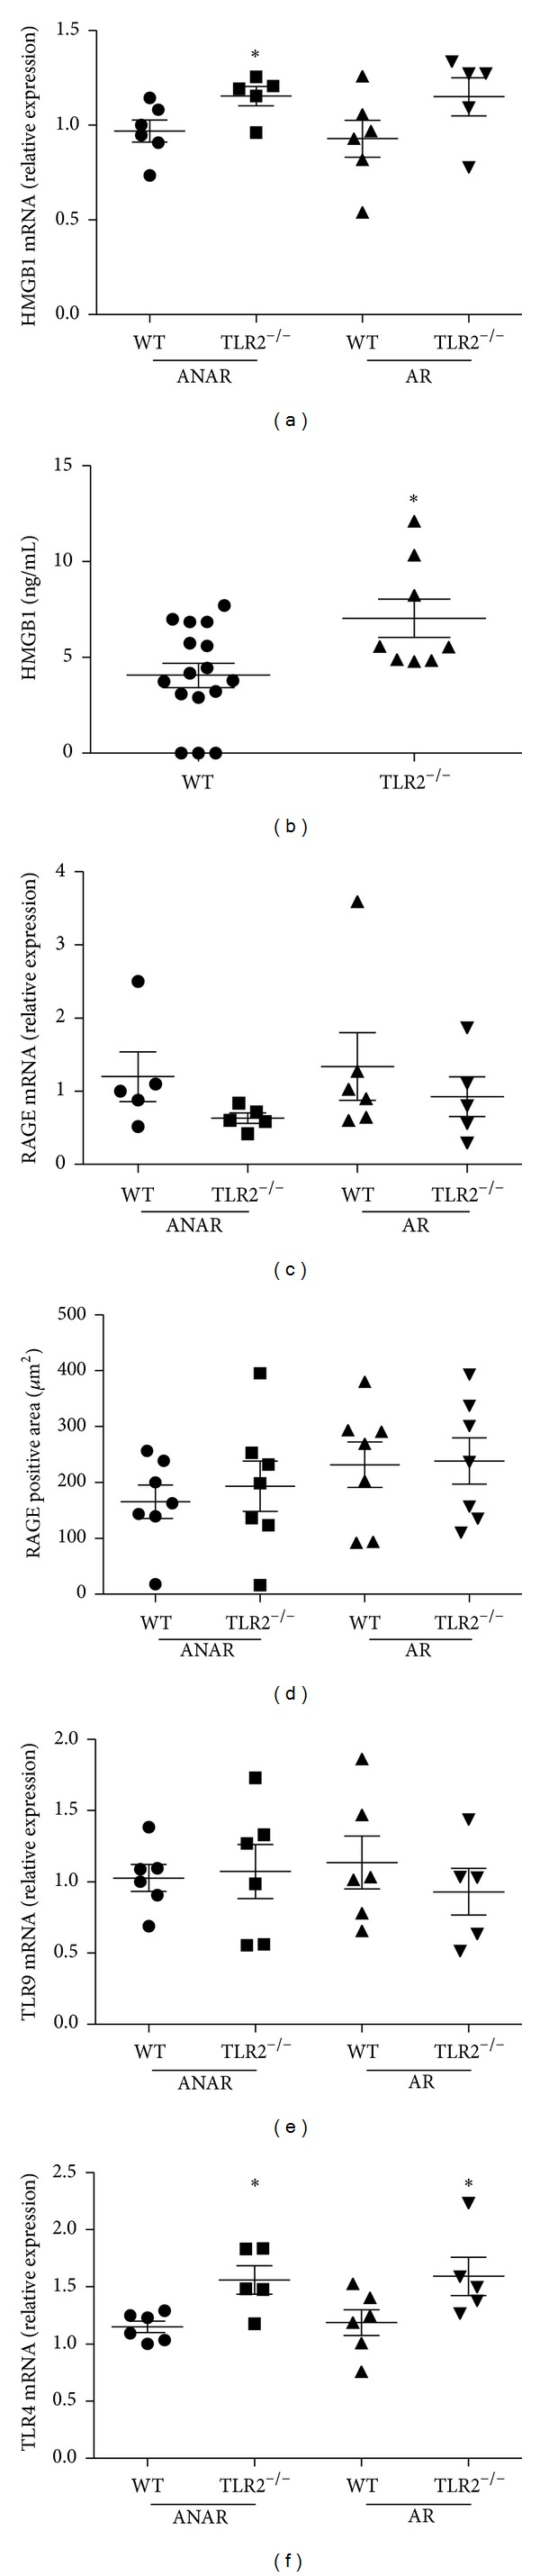 Expression levels of <t>HMGB1</t> and its receptors after MI/R (30 min/24 hrs). (a) A moderate up-regulation of HMGB1 mRNA can be detected in the area not at risk (ANAR) of TLR2 −/− animals, (b) accompanied by increased HMGB1 plasma levels. Expression levels of RAGE (c, d) or TLR9 (e) were not significantly different between genotypes while TLR2 −/− animals showed an up-regulation of TLR4 mRNA (f) compared to WT in ANAR and AR. * P